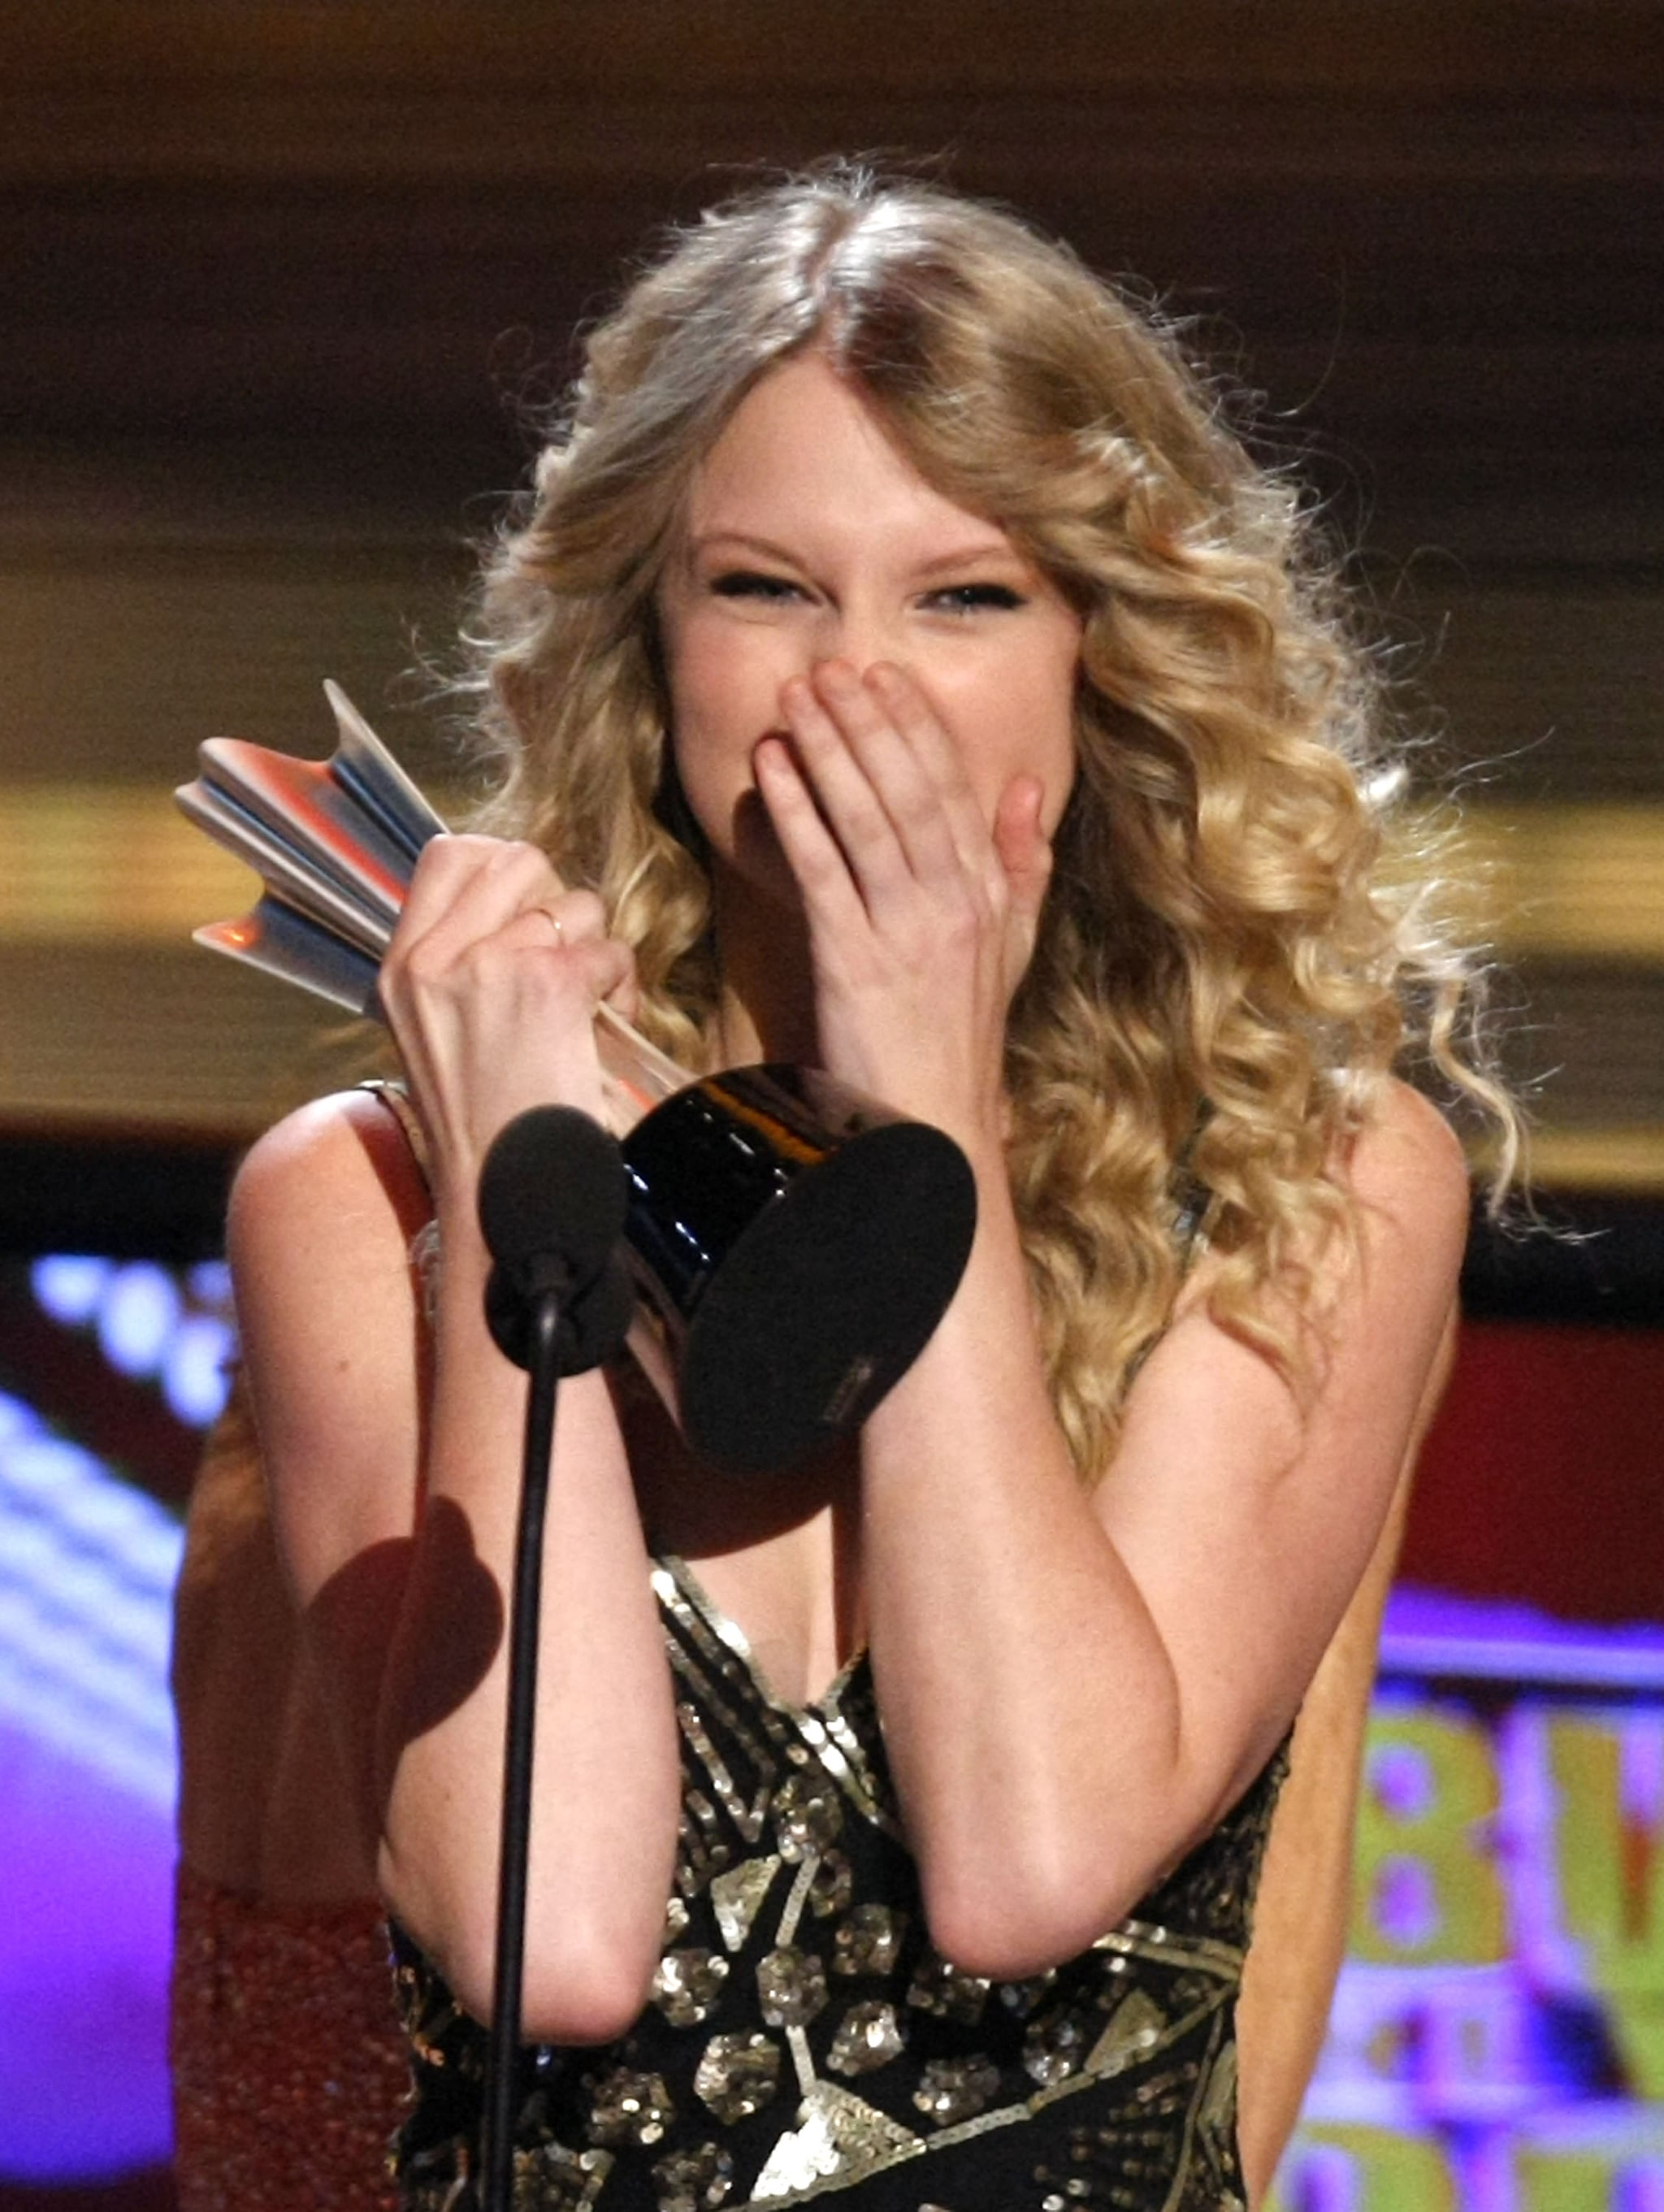 She covered her face while accepting her album of the year award at the Academy of Country Music Awards in April 2009.